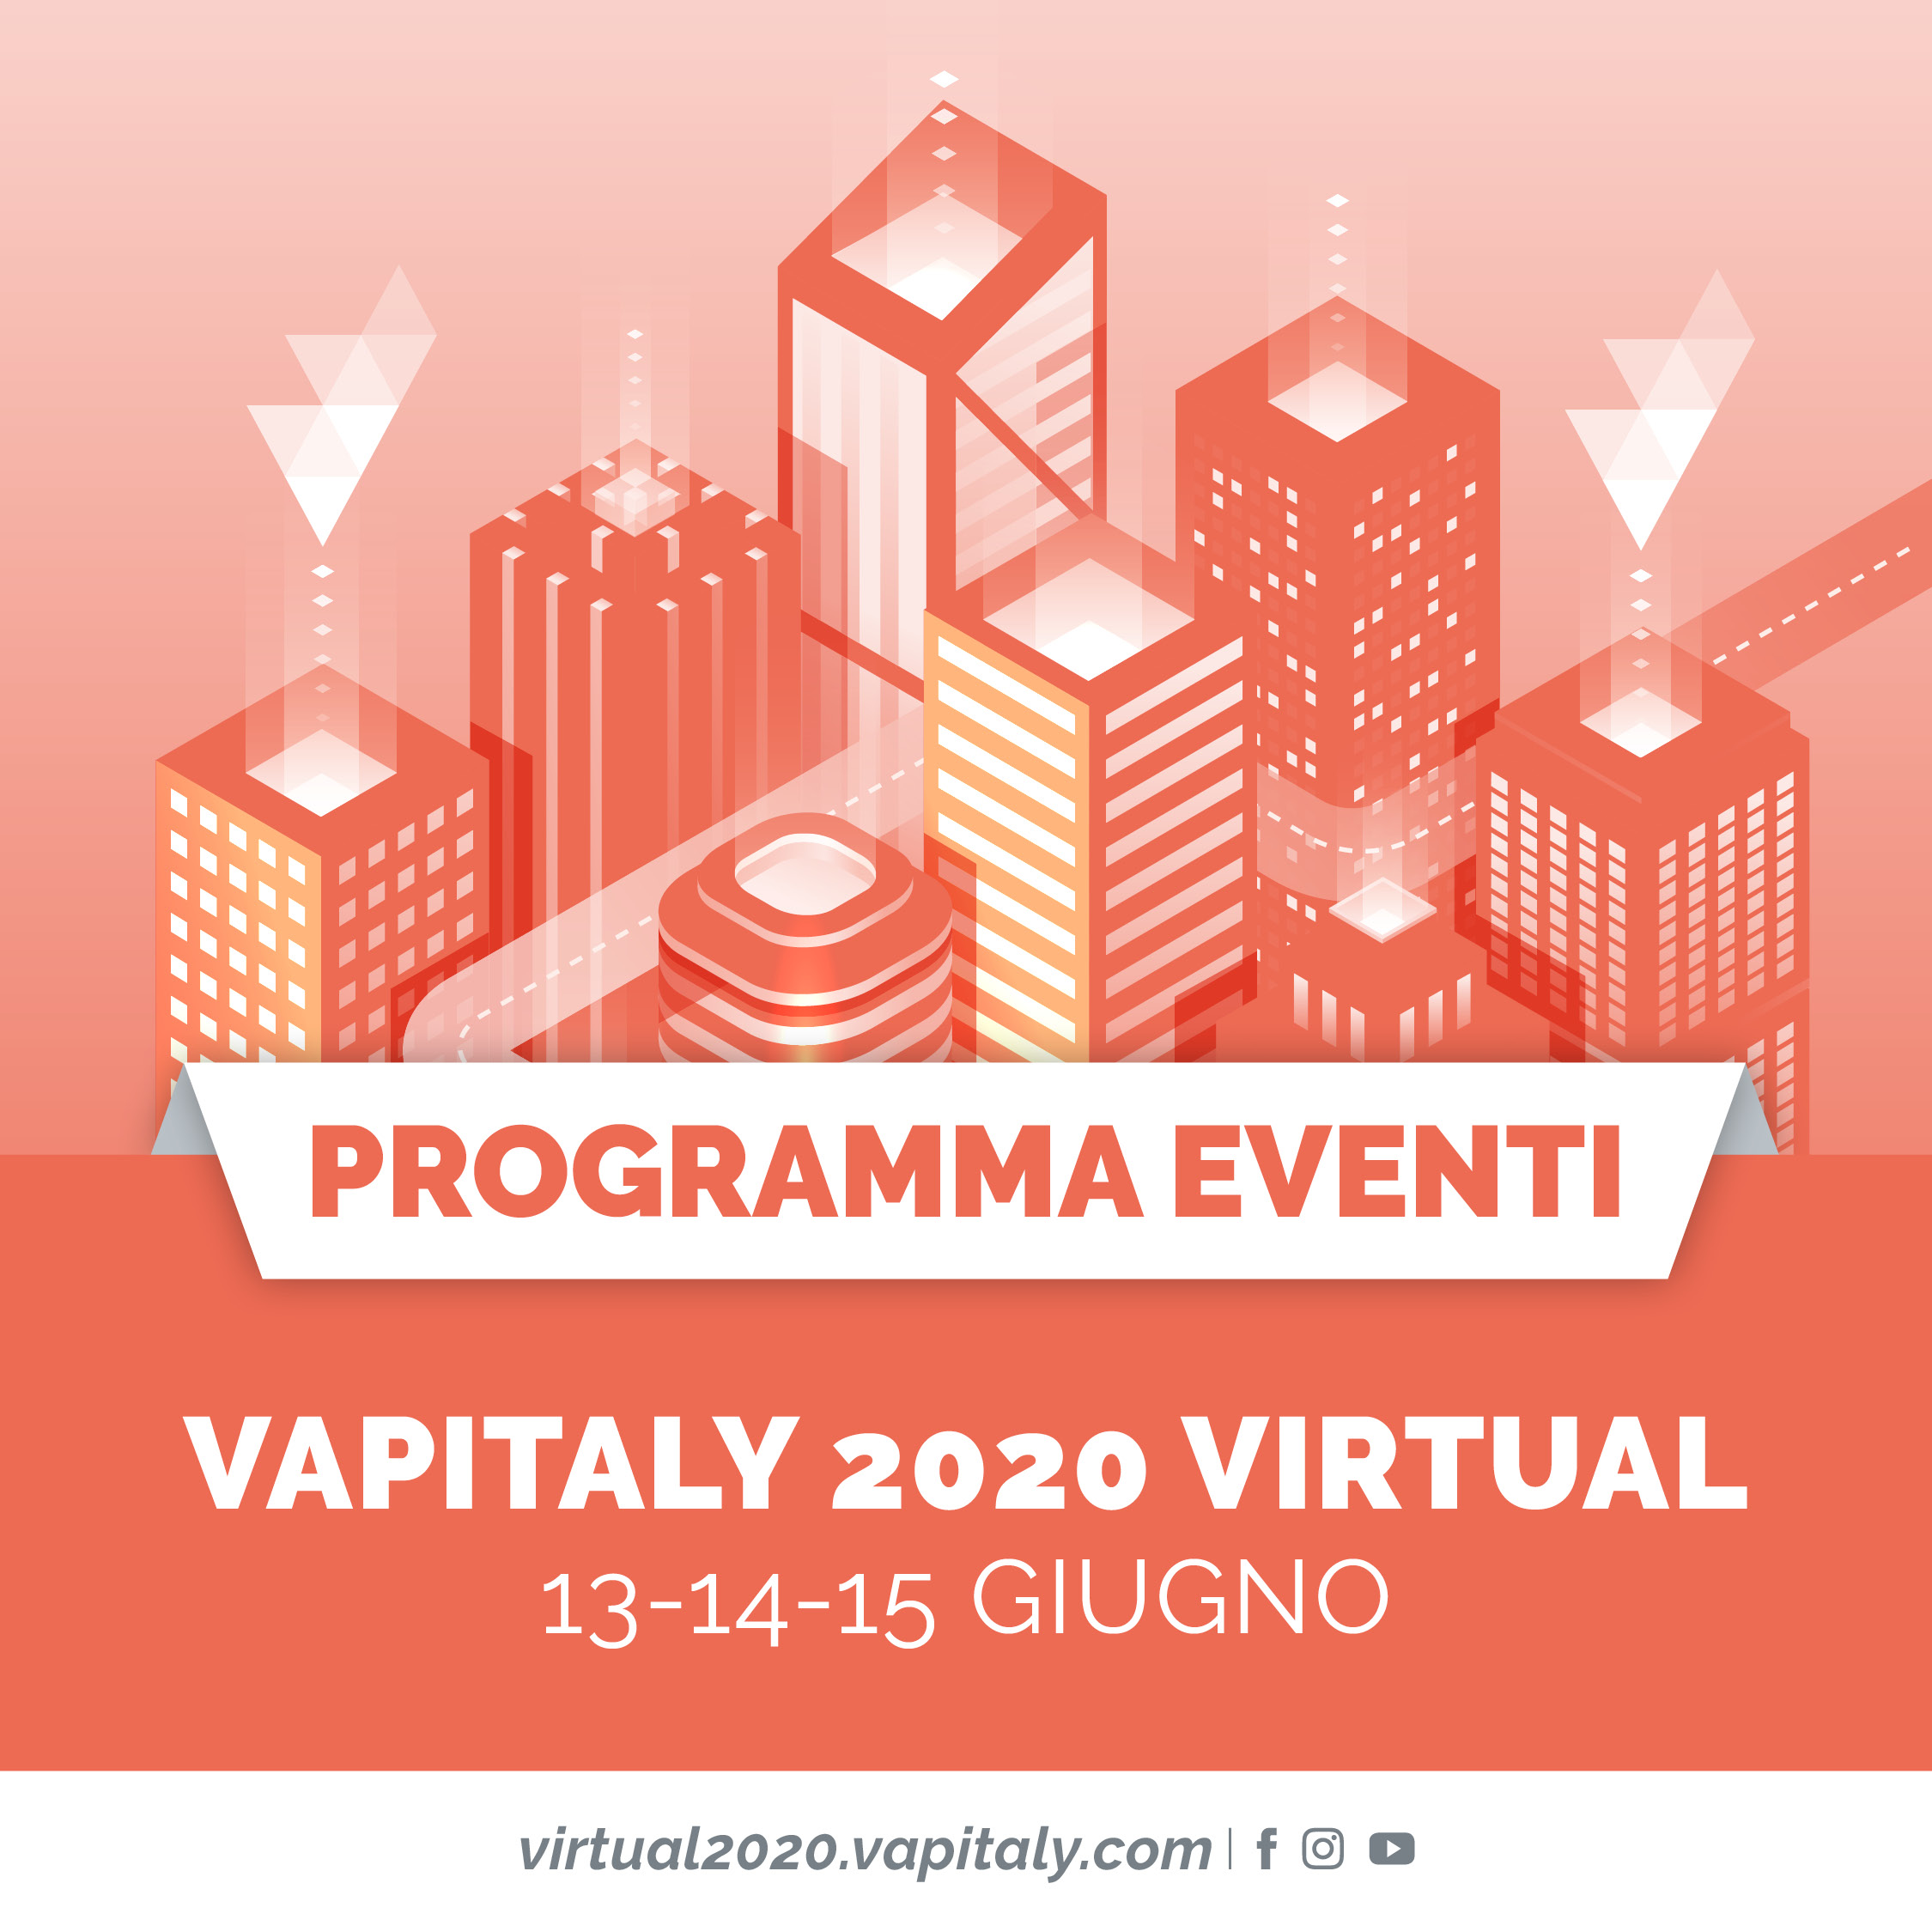 Vapitaly 2020 Virtual, the first virtual event in Europe dedicated to the Vaping sector, is about to begin!